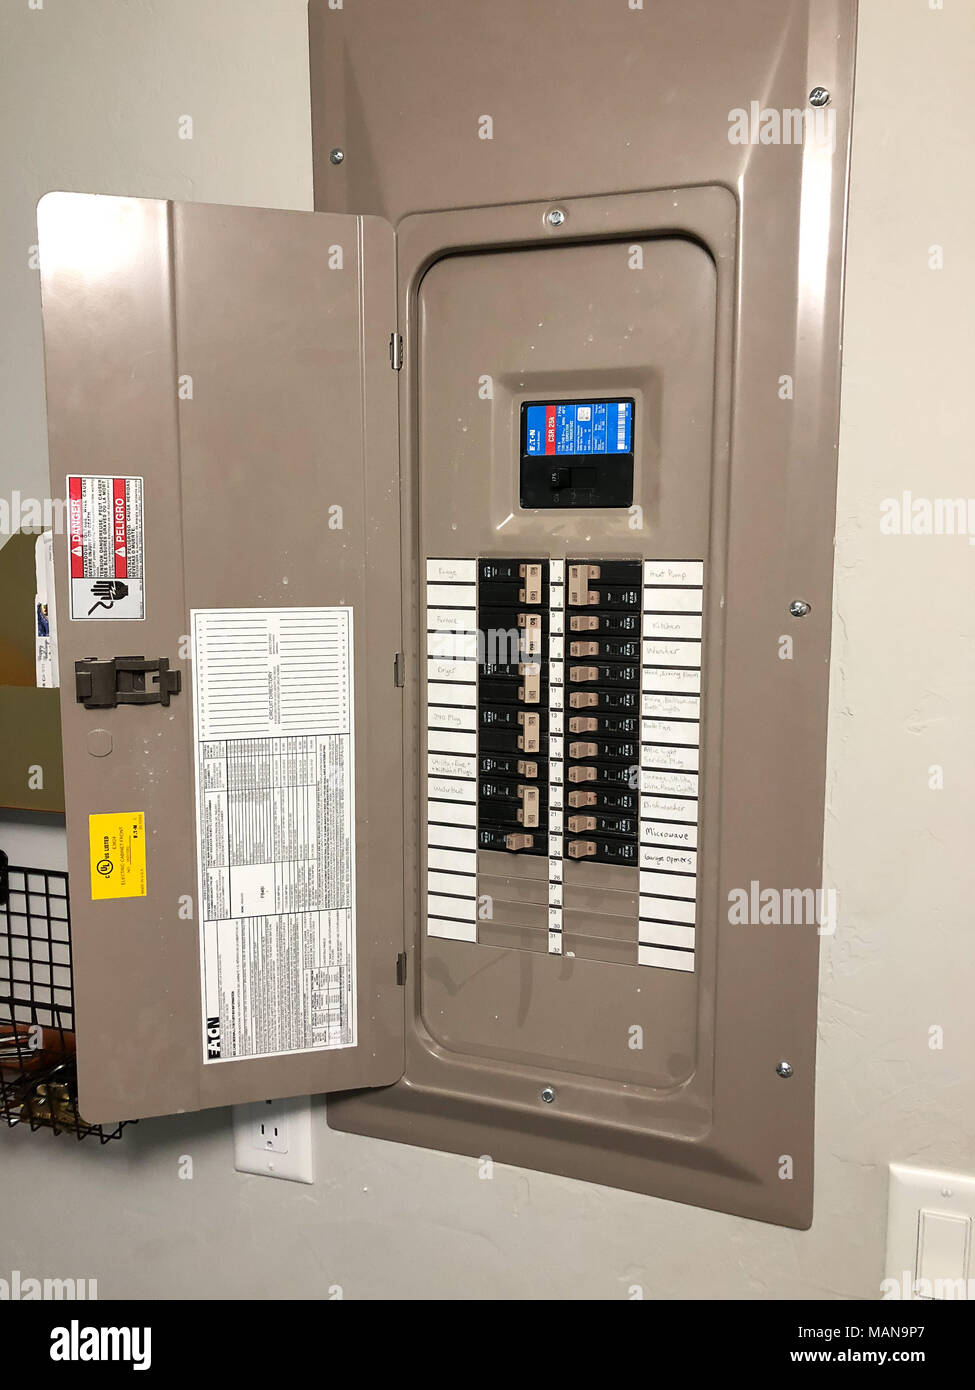 Electrical Panel House Renovation Stock Photo: 178718911 - Alamy